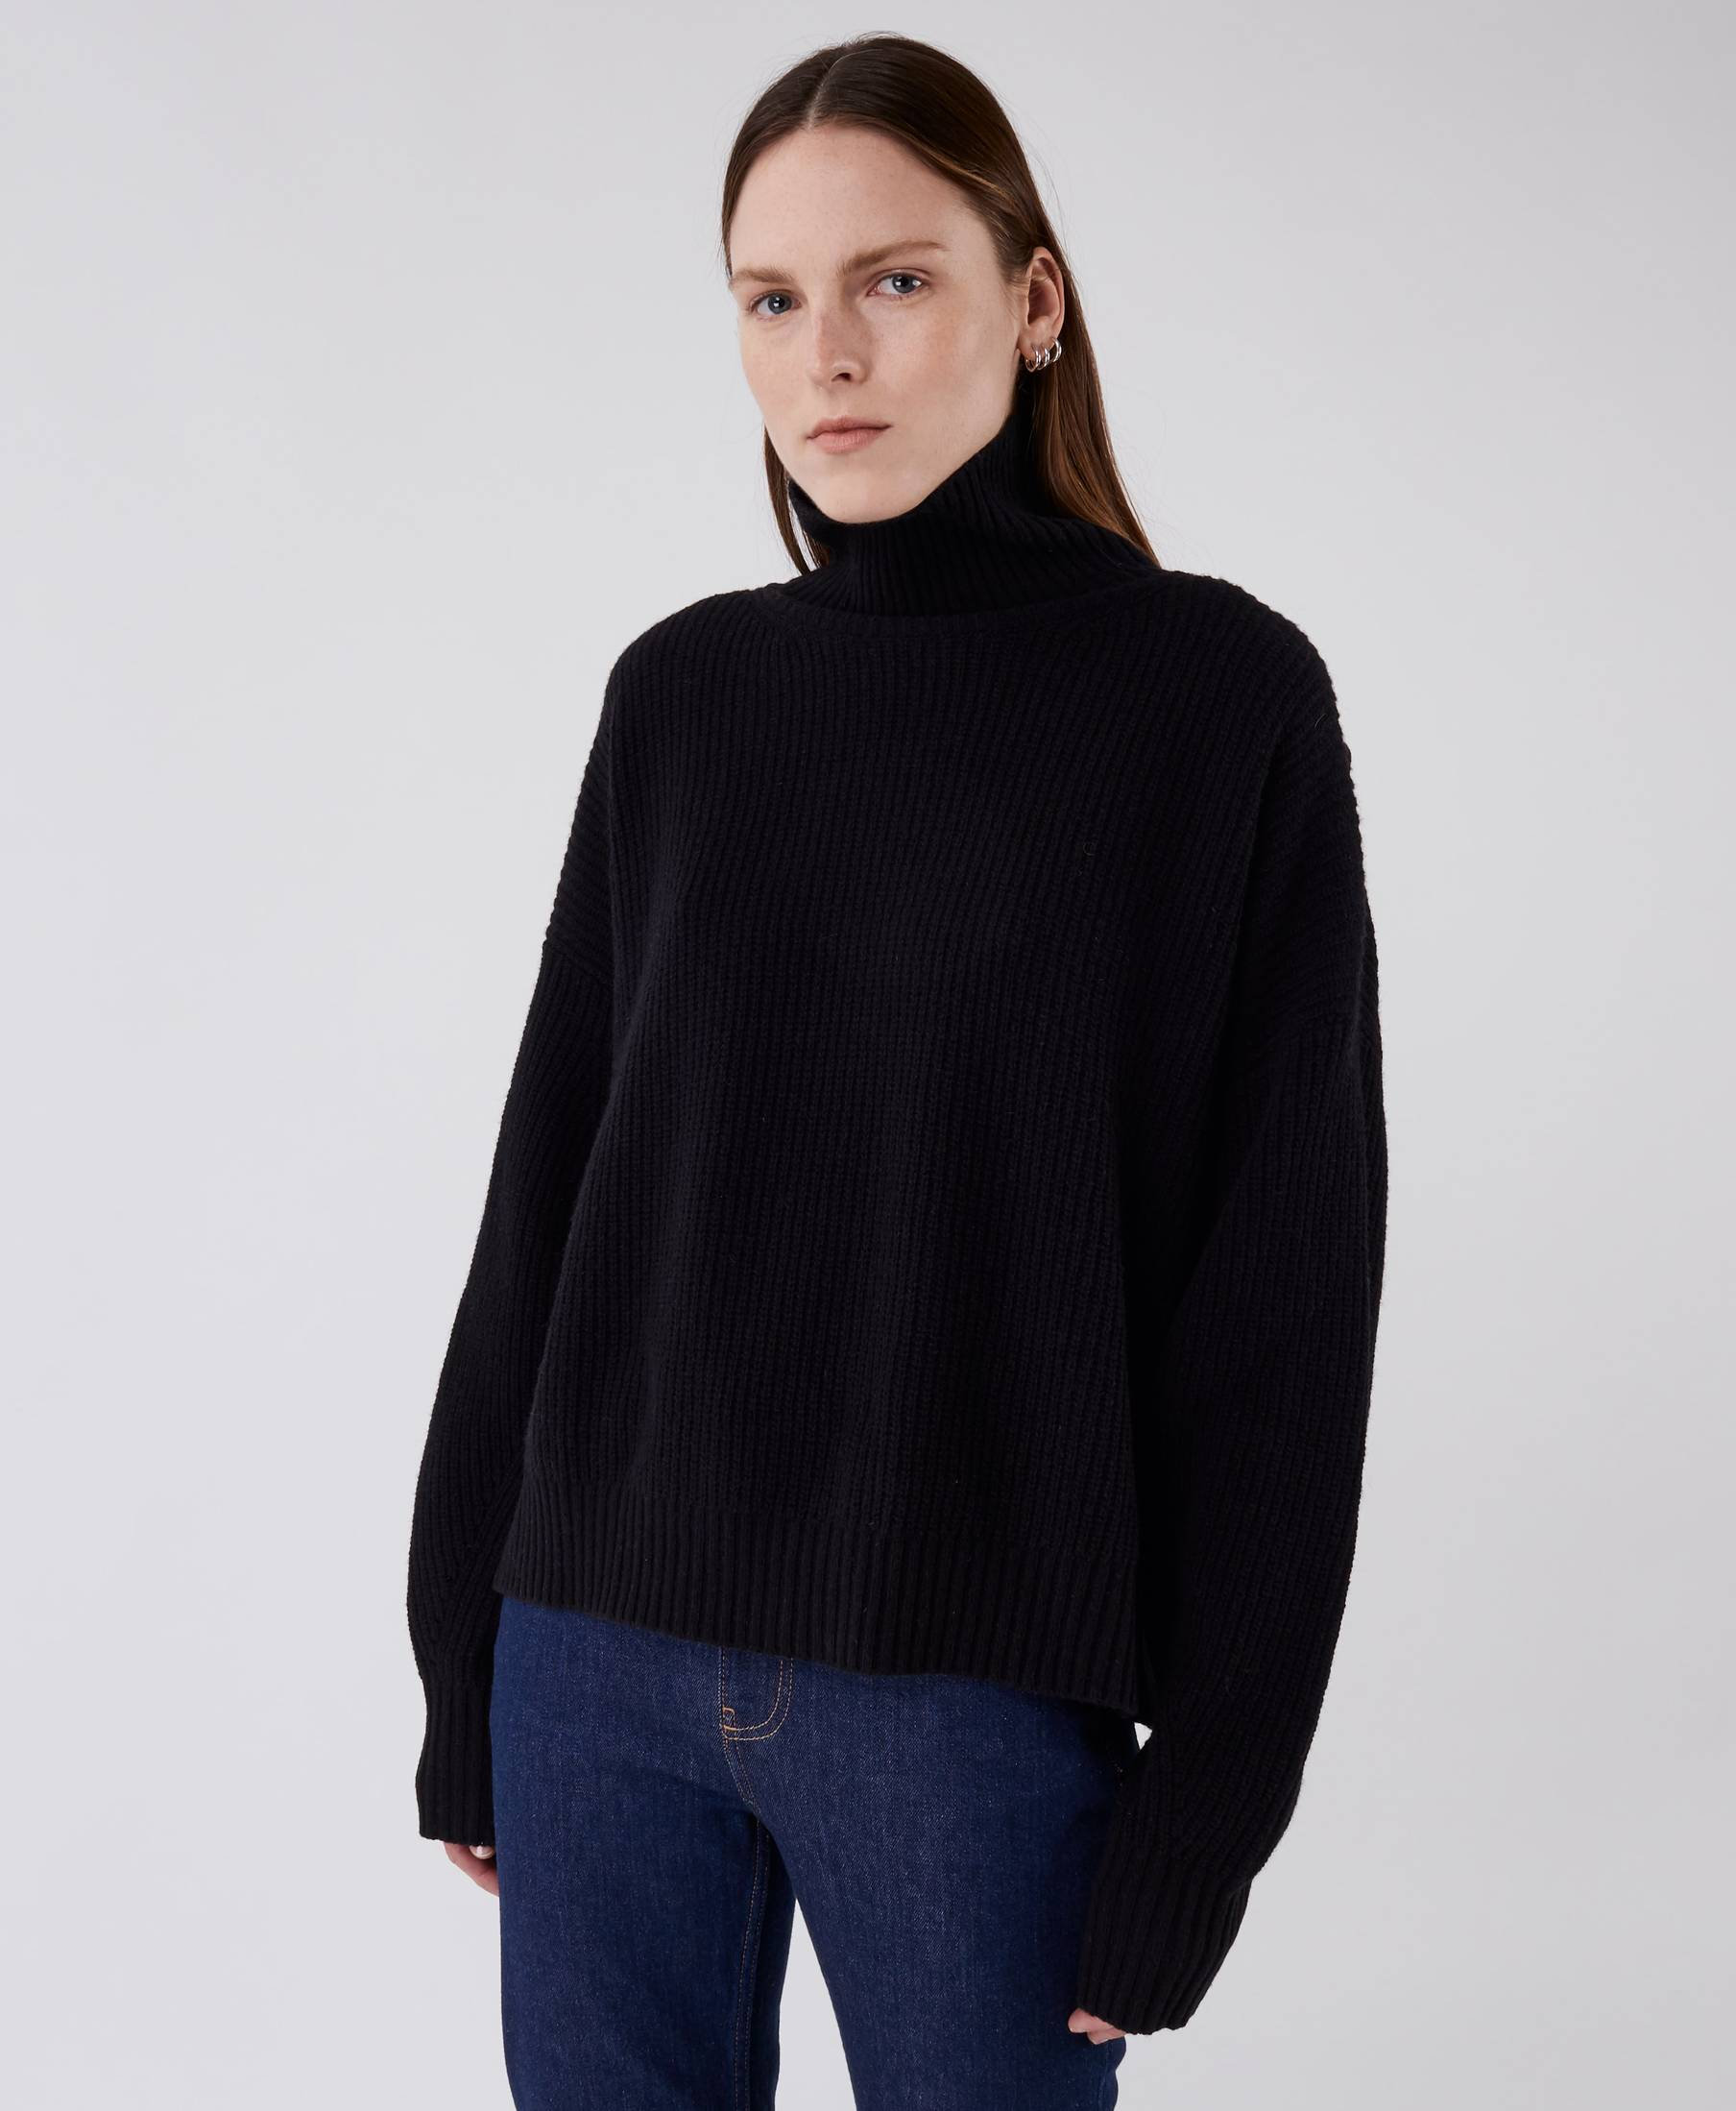 Kara Turtle Sweater Pistol Black